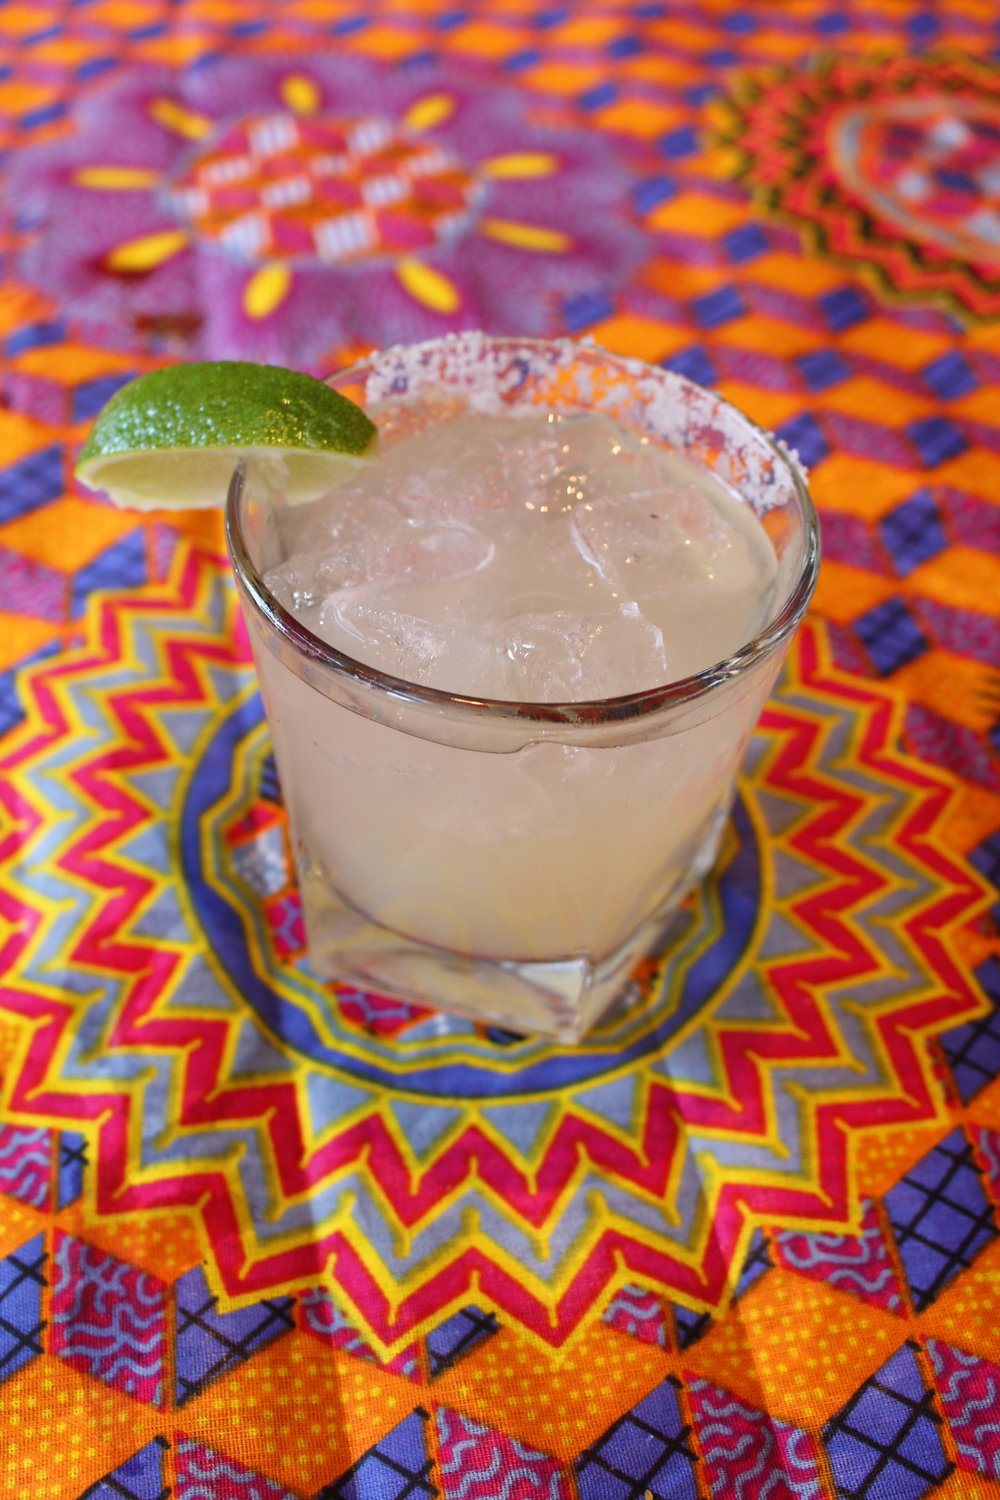 El Barrio cocktail recipe from Red Rooster in Harlem by Marcus Samuelsson